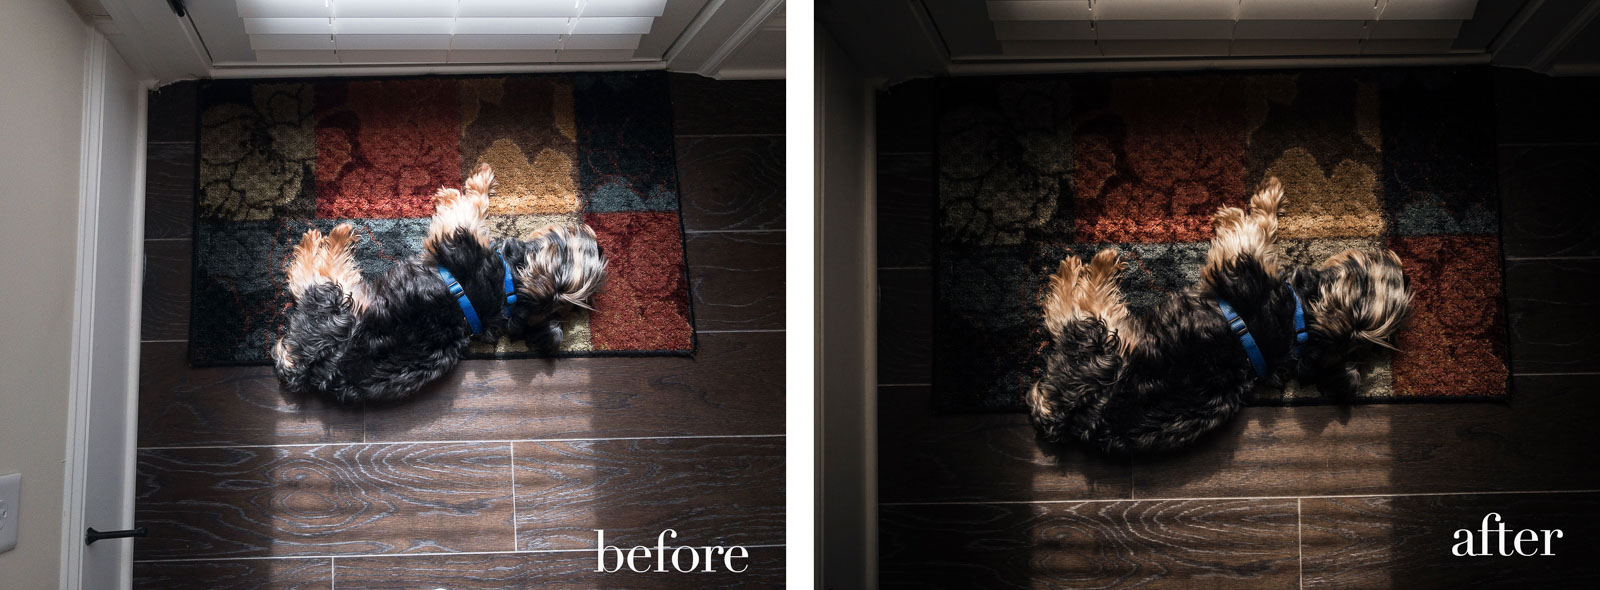 Mobile-Photo-Tips4-dog-curled-up-by-door-in-sunlight-before-and-after-chanel-french